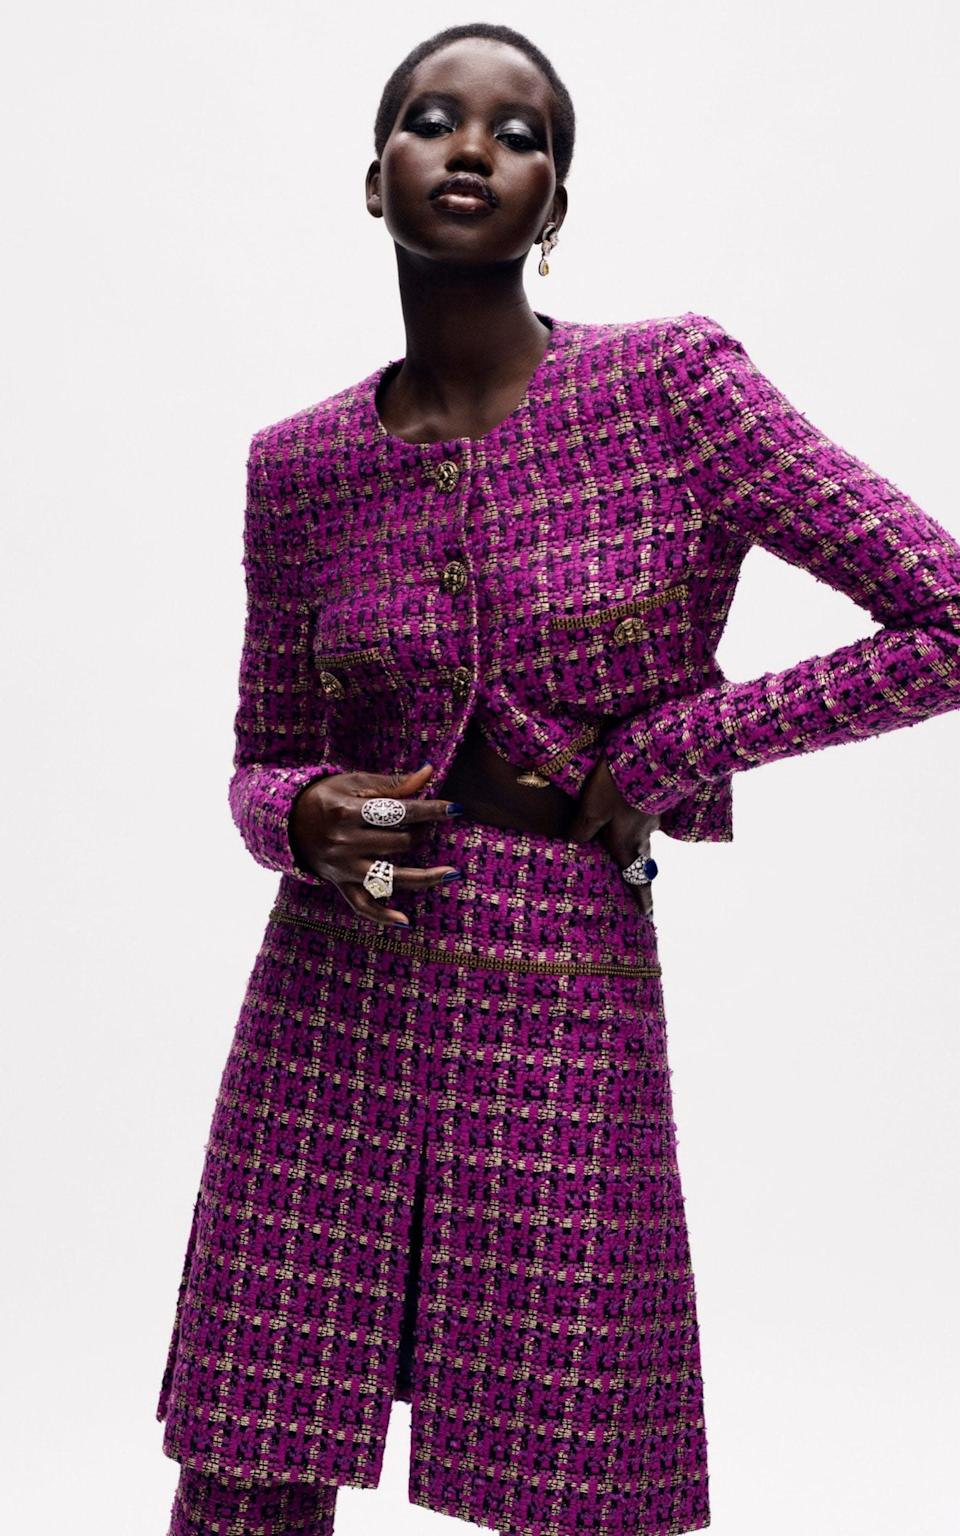 chanel couture adut akech - Mikael Jansson